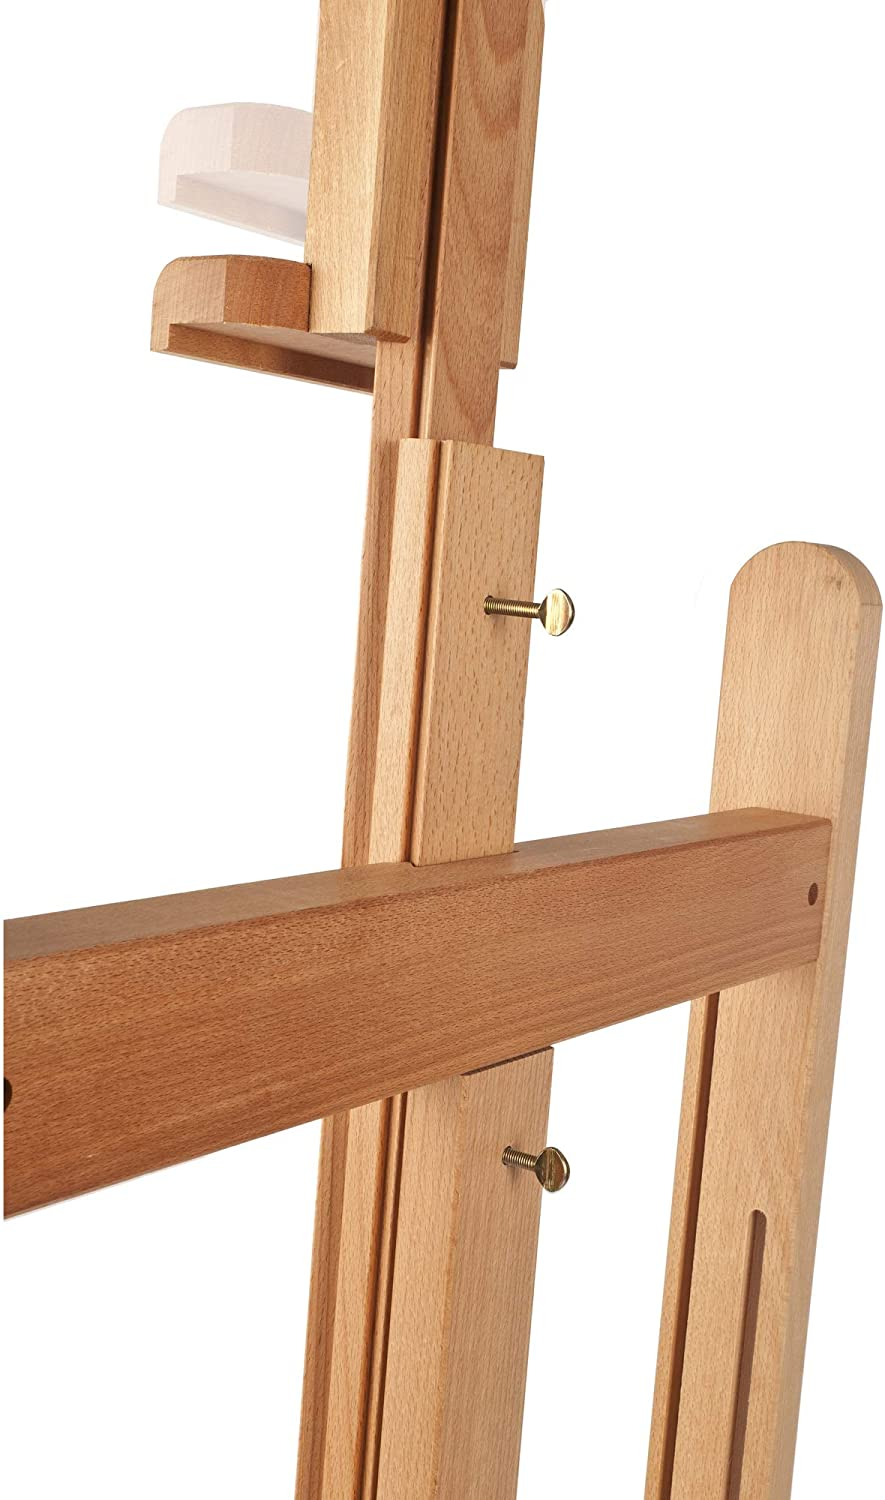 Mabef Deluxe Studio Easel MBM-06D